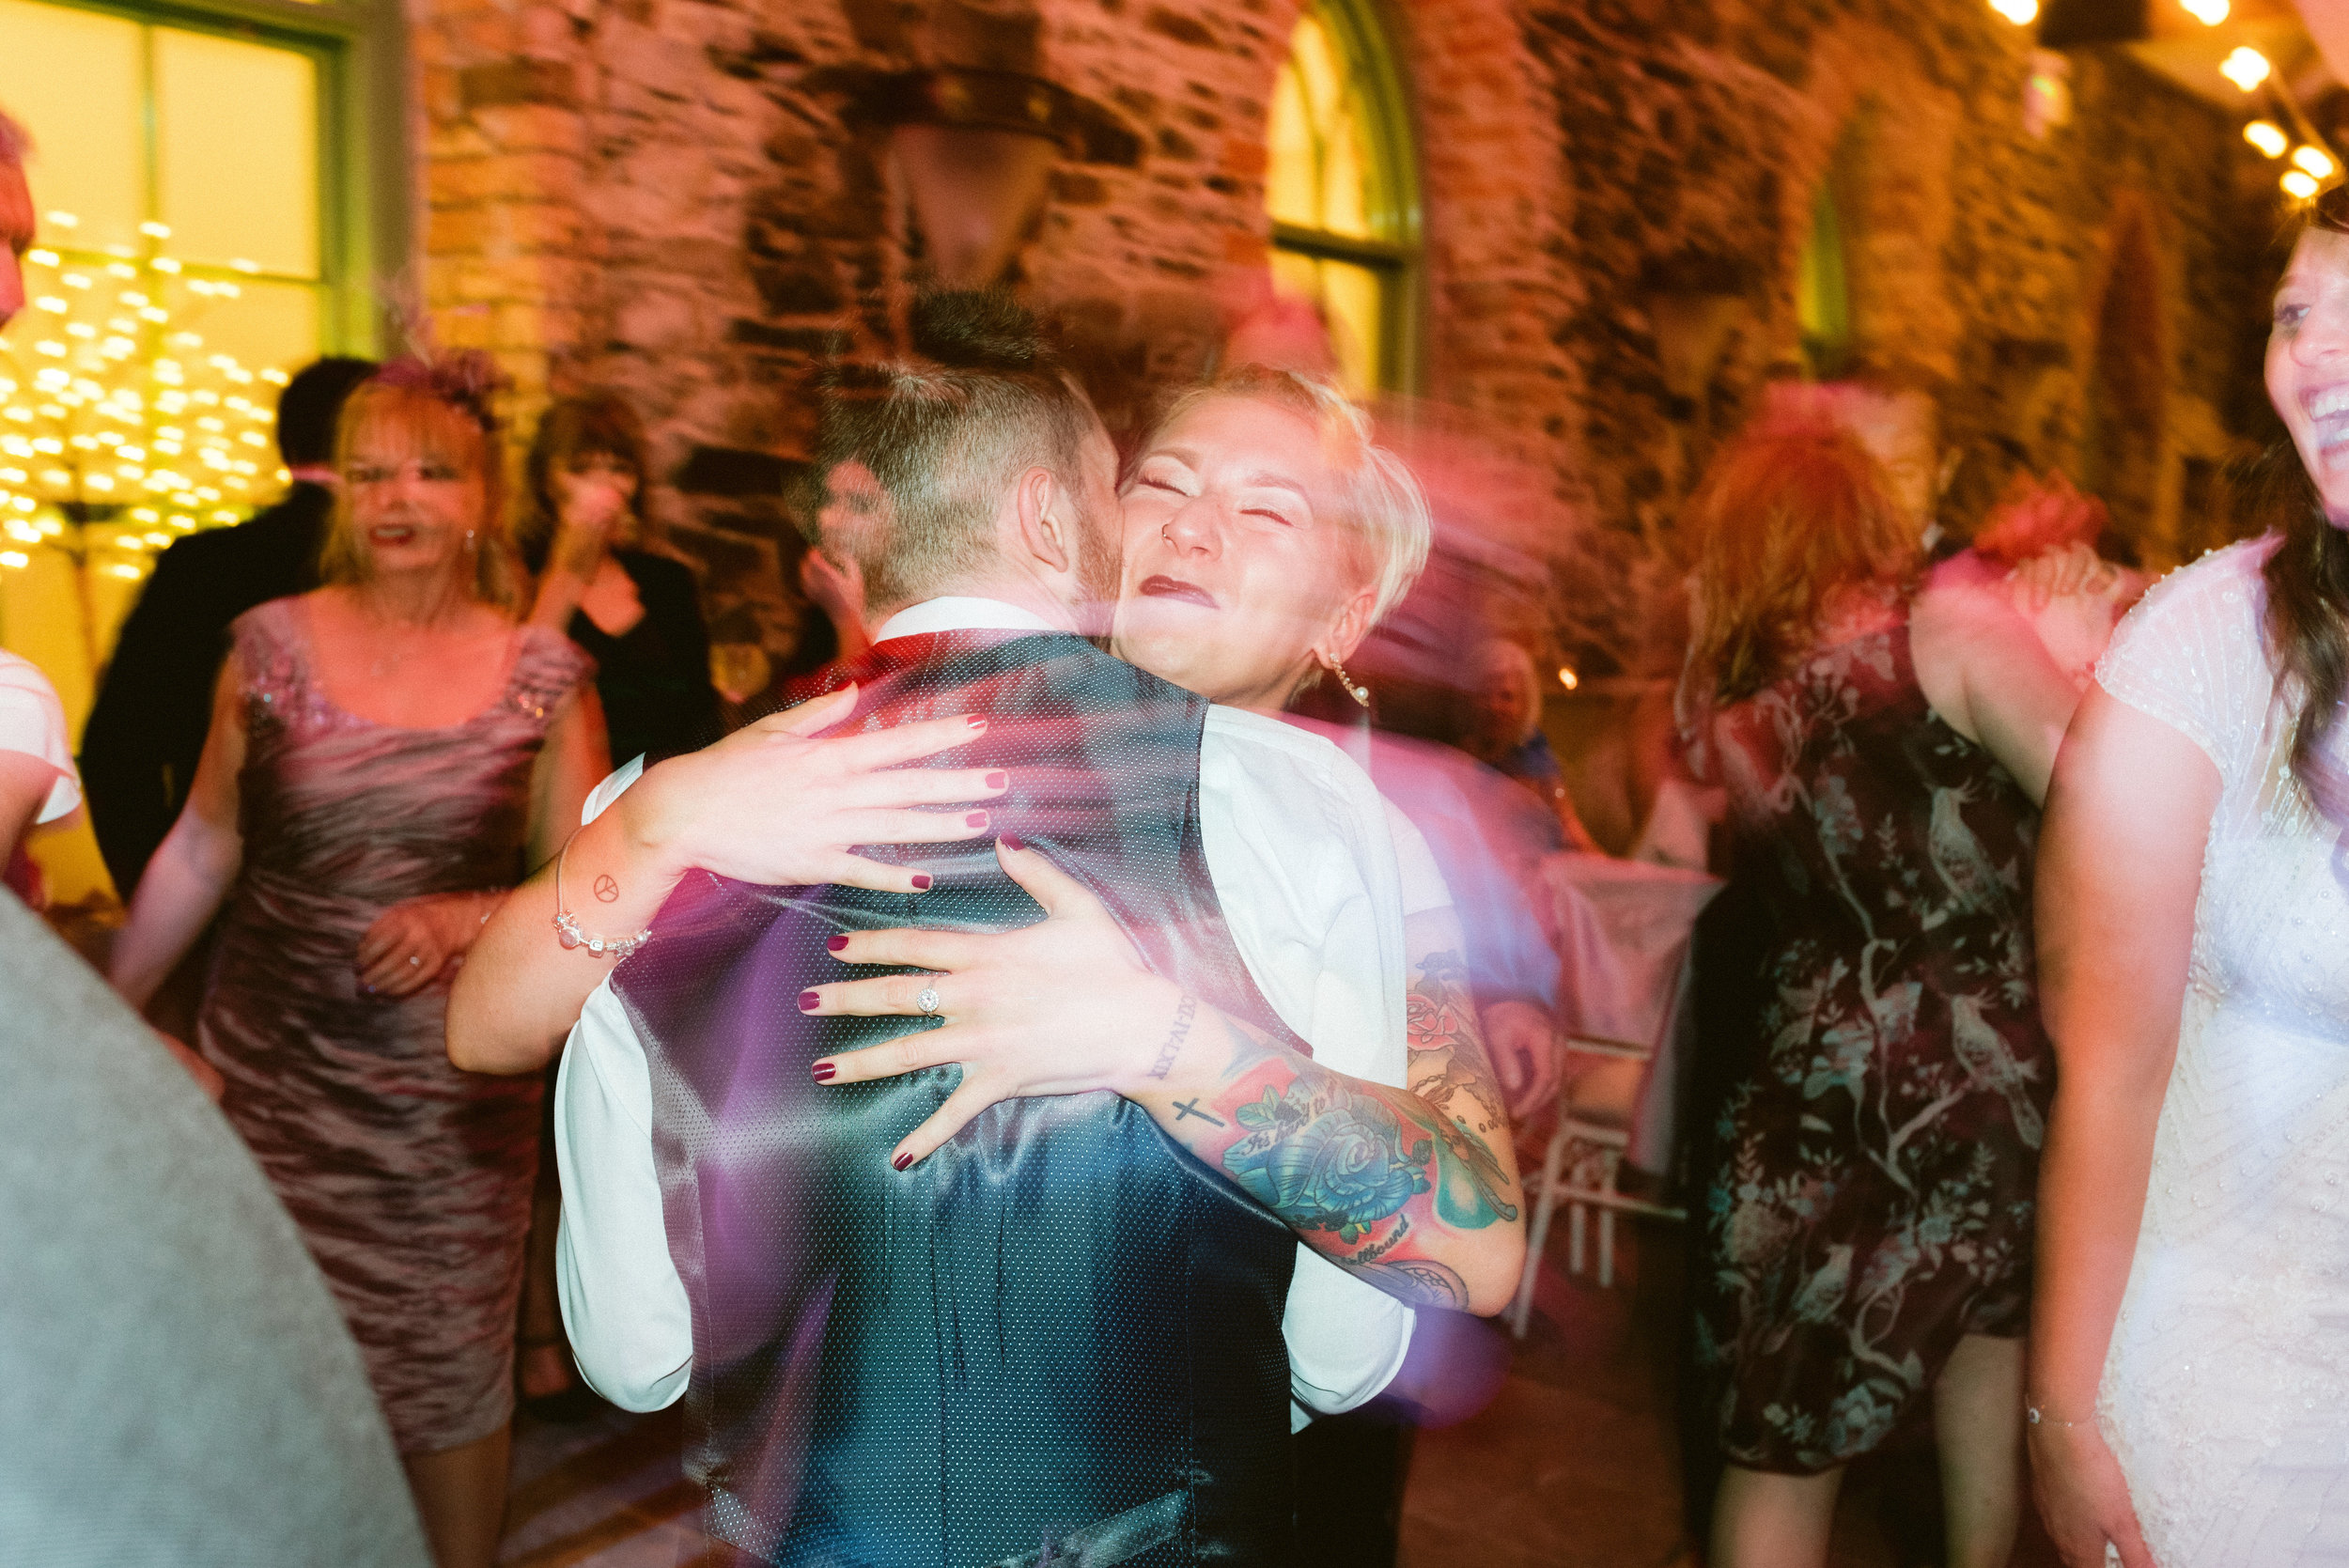 orange tree wedding, barn wedding venue northern ireland, rustic wedding venues NI, bright wedding venues northern ireland, greyabbey wedding venue, wedding speeches, first dance (22).jpg